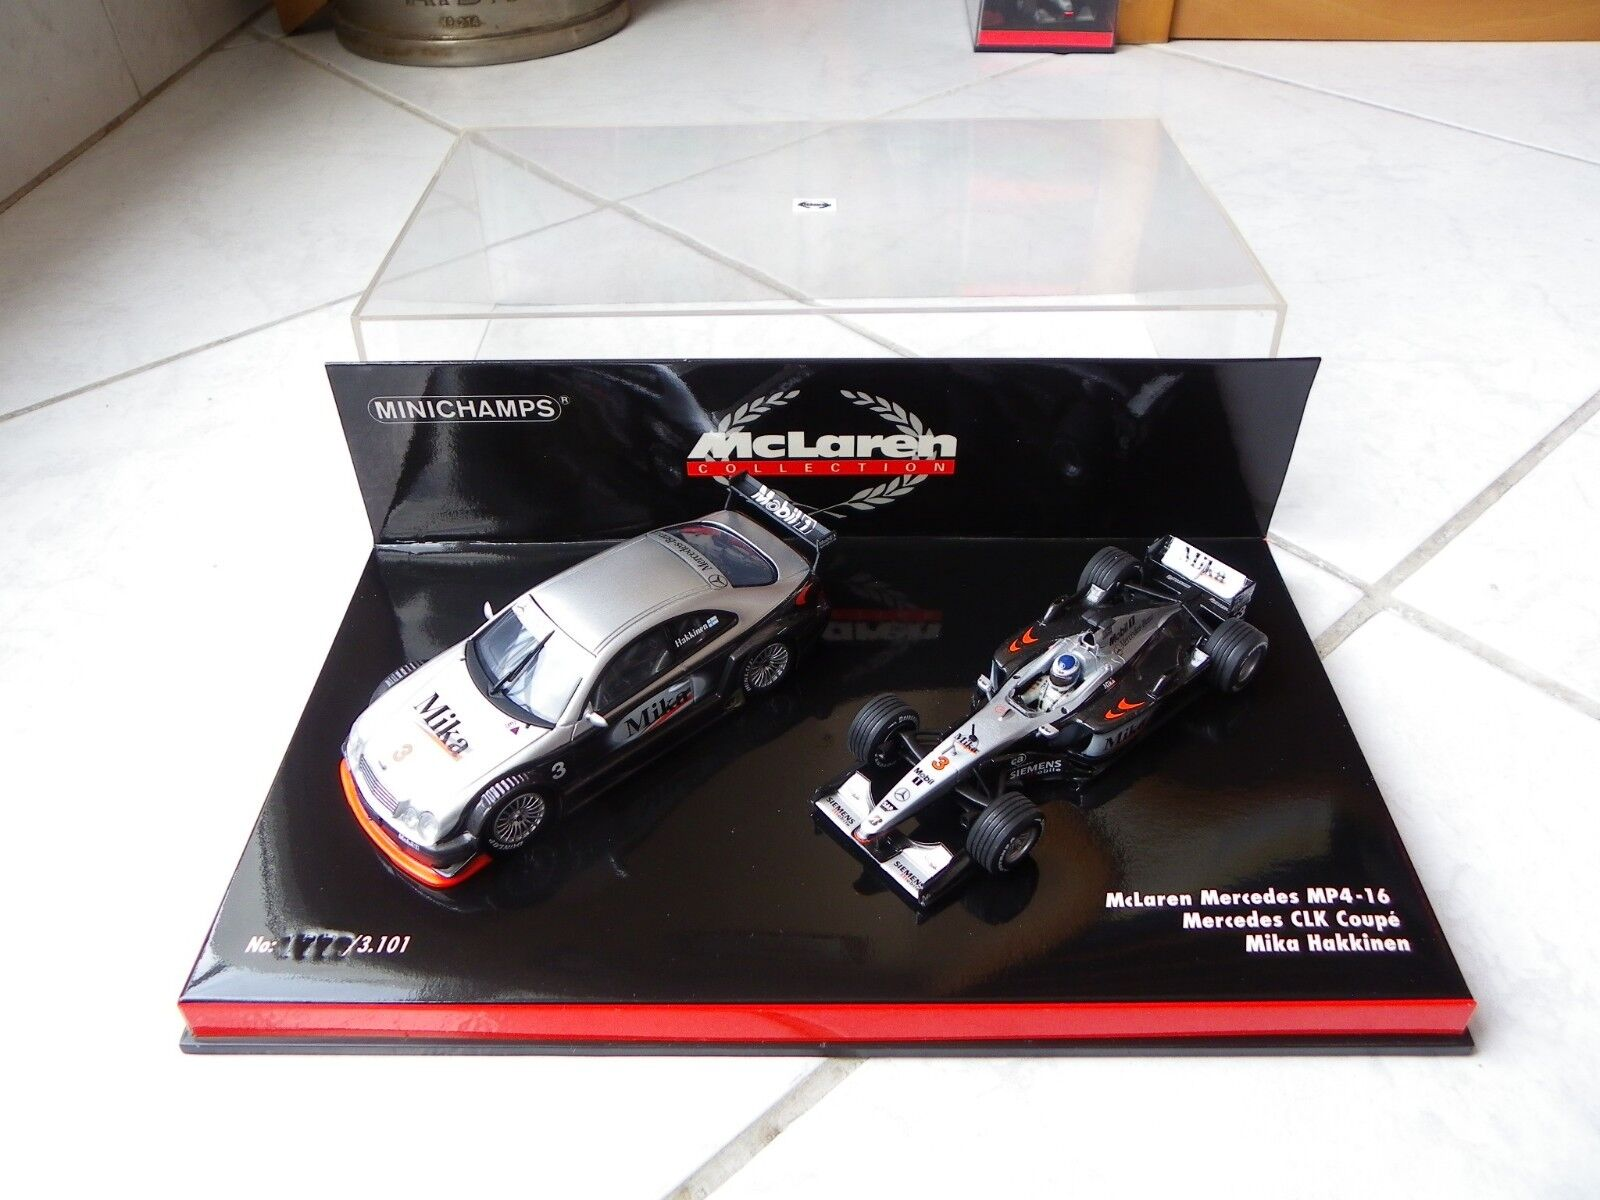 Mclaren Mercedes MP4-16 CLK Coupé Mika  Hakkinen Minichamps 1 43 F1 Set coffret  70% de réduction